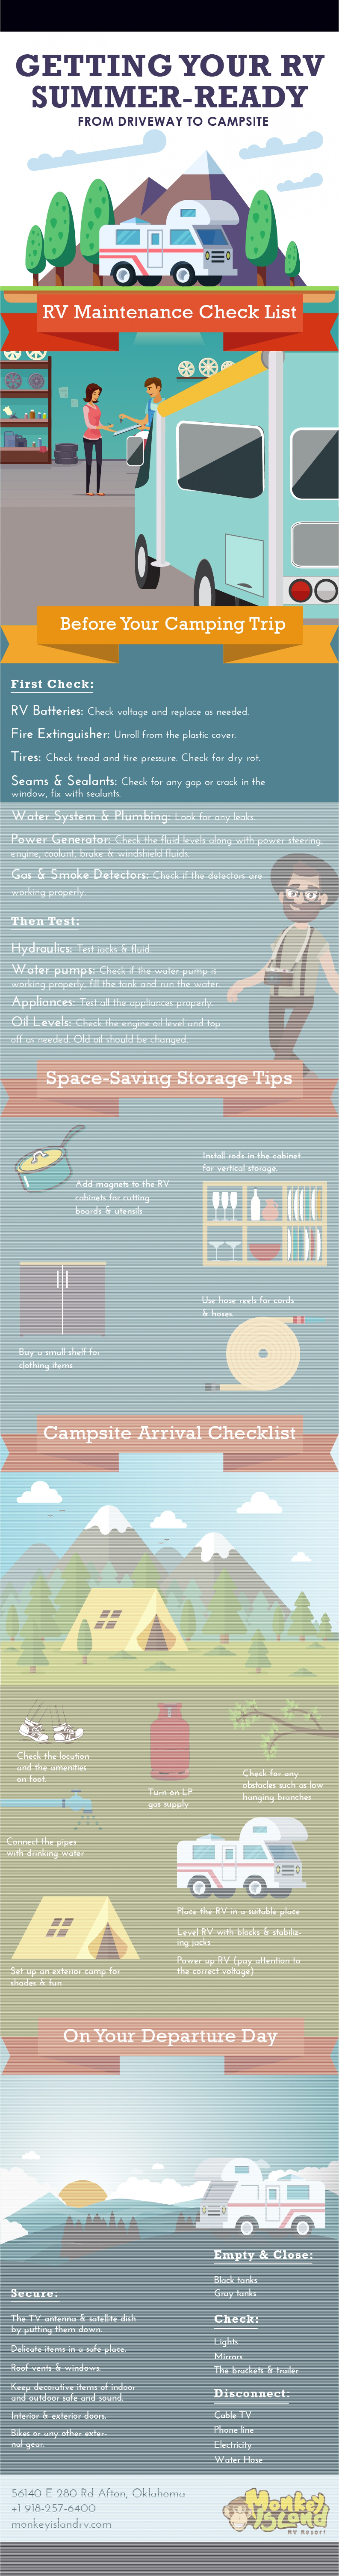 getting-your-rv-summer--ready-from-driveway-to-campsite 1.jpg